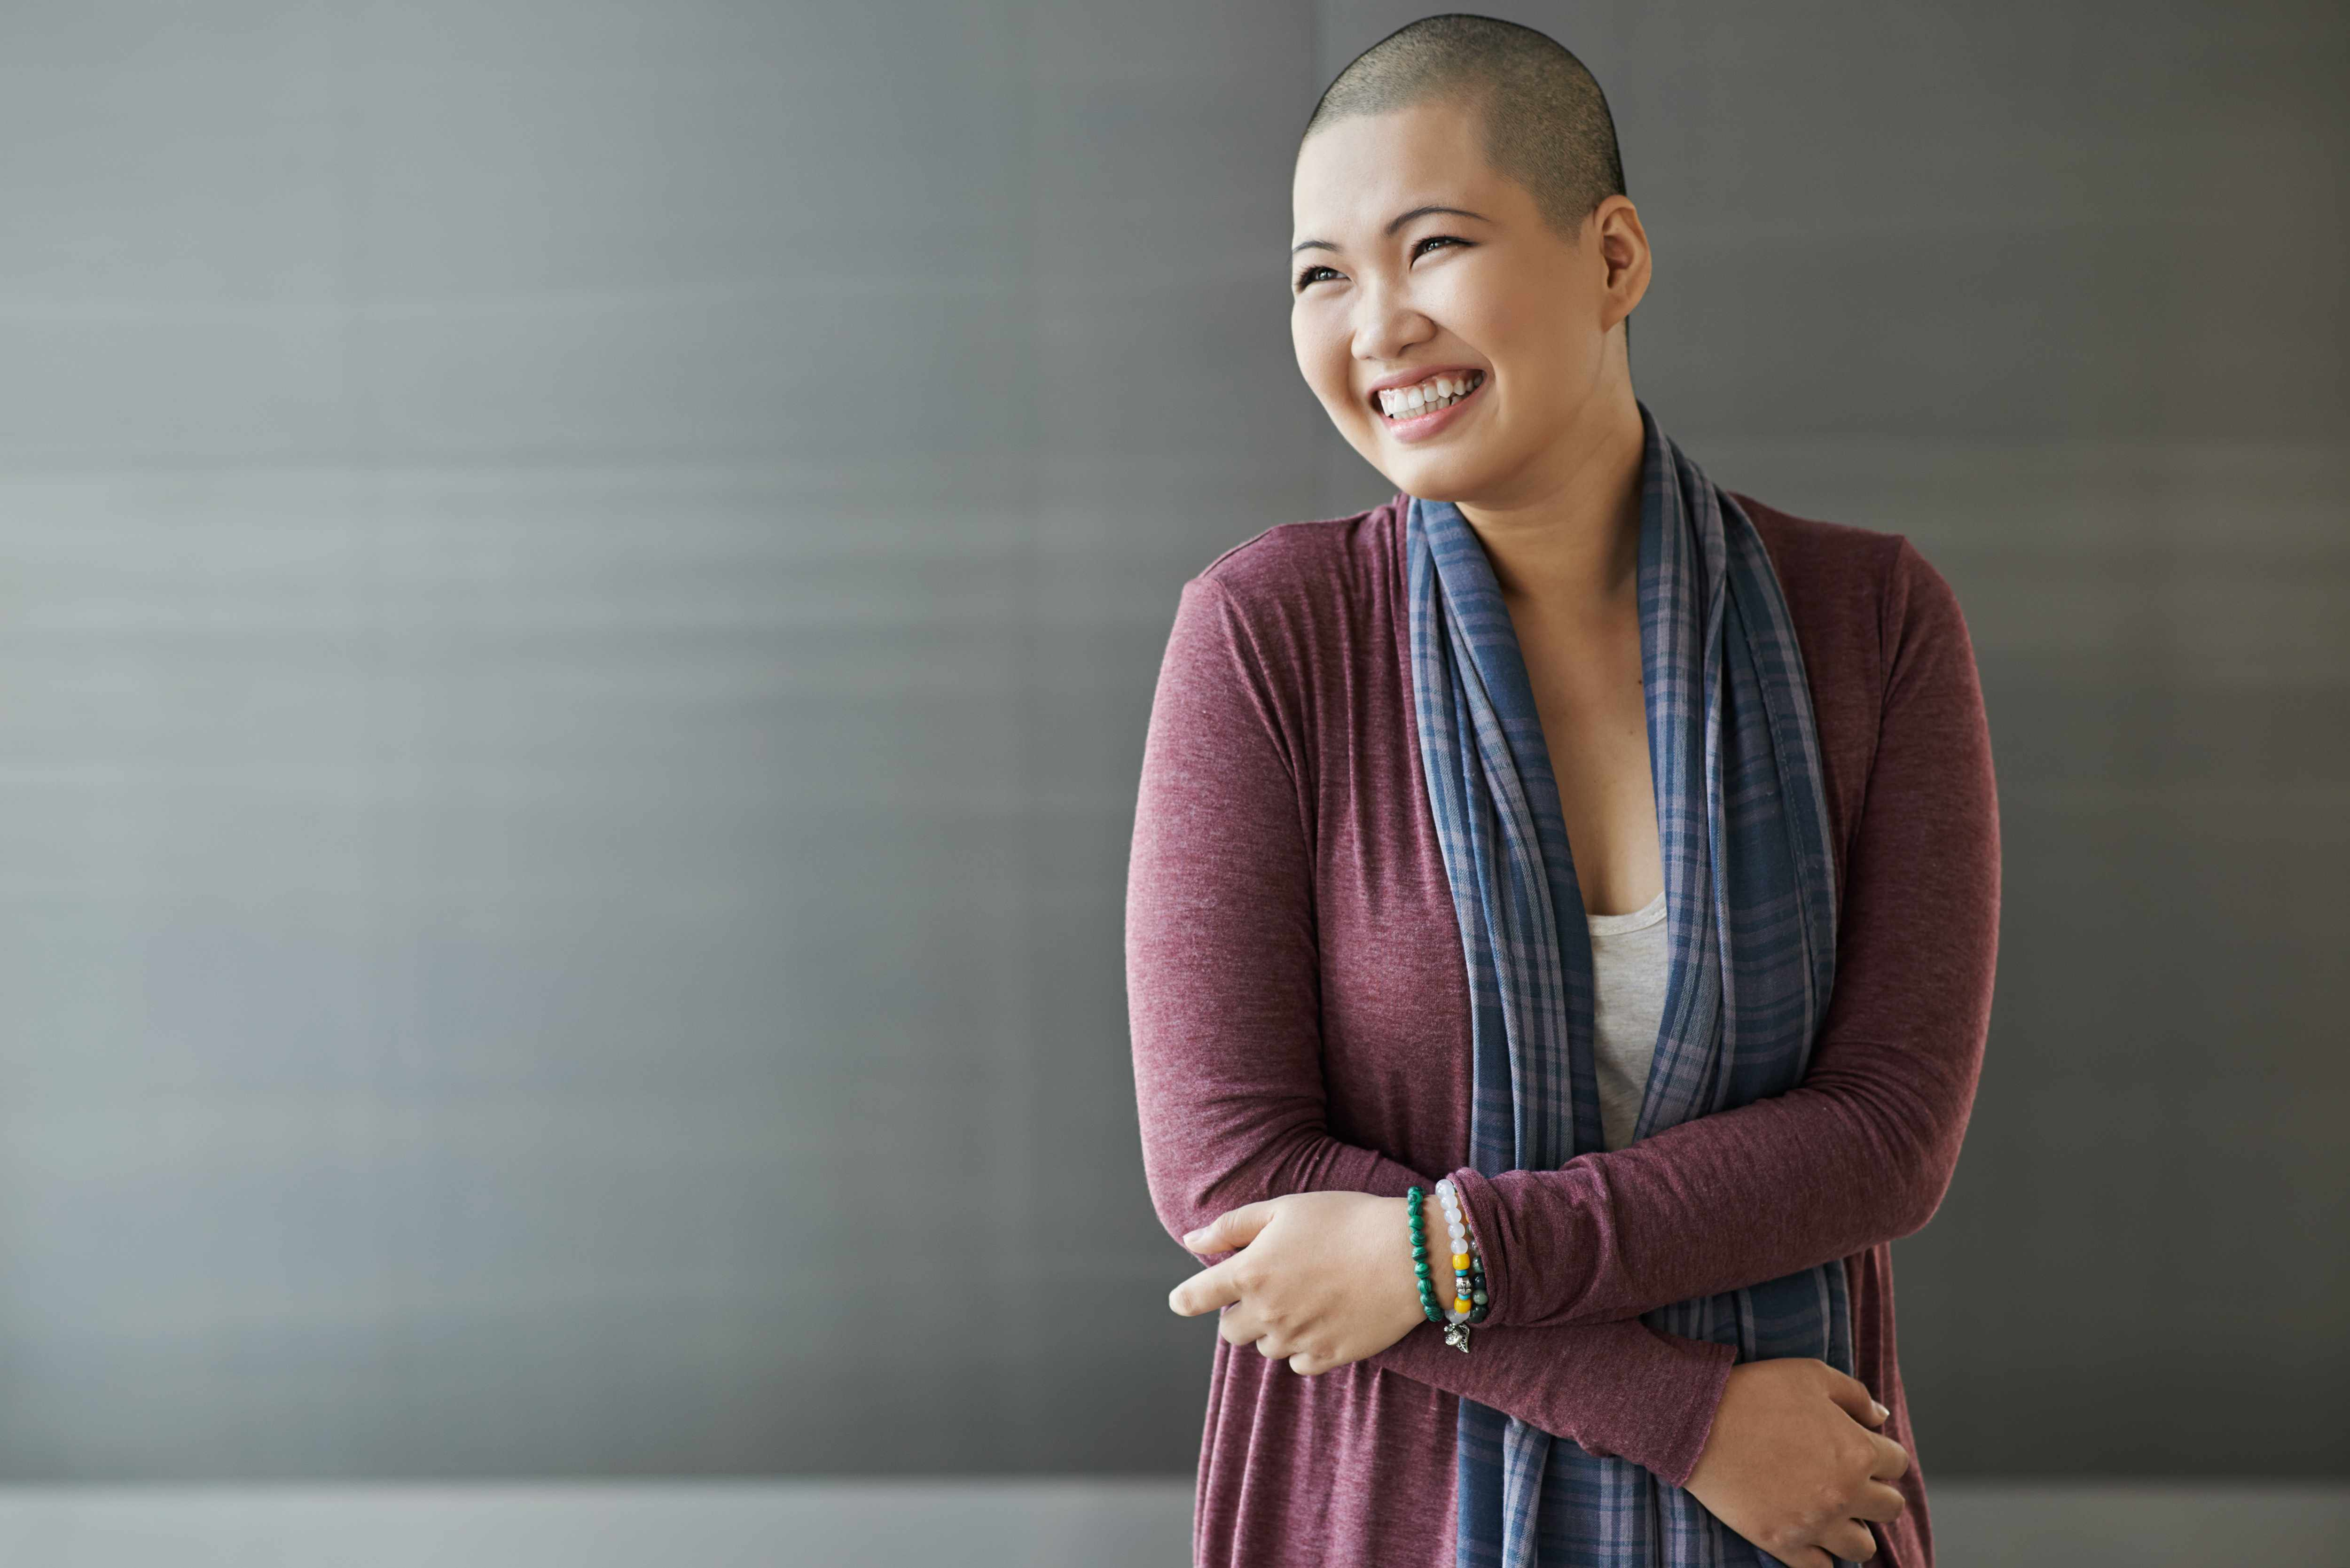 a smiling young Asian woman with shaven head representing cancer patient after chemo therapy